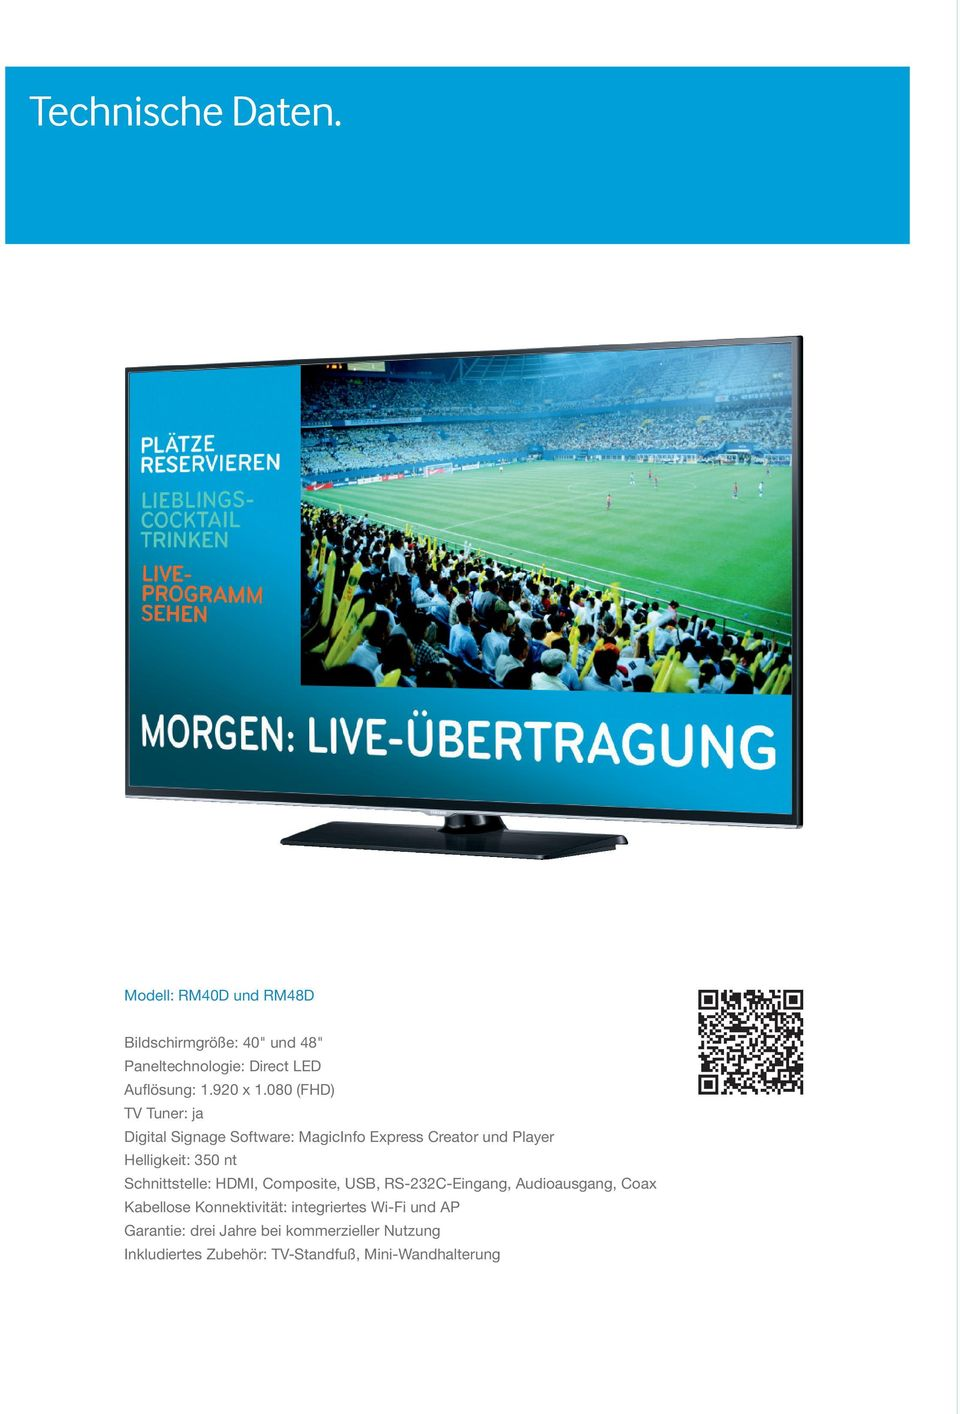 080 (FHD) TV Tuner: ja Digital Signage Software: MagicInfo Express Creator und Player Helligkeit: 350 nt